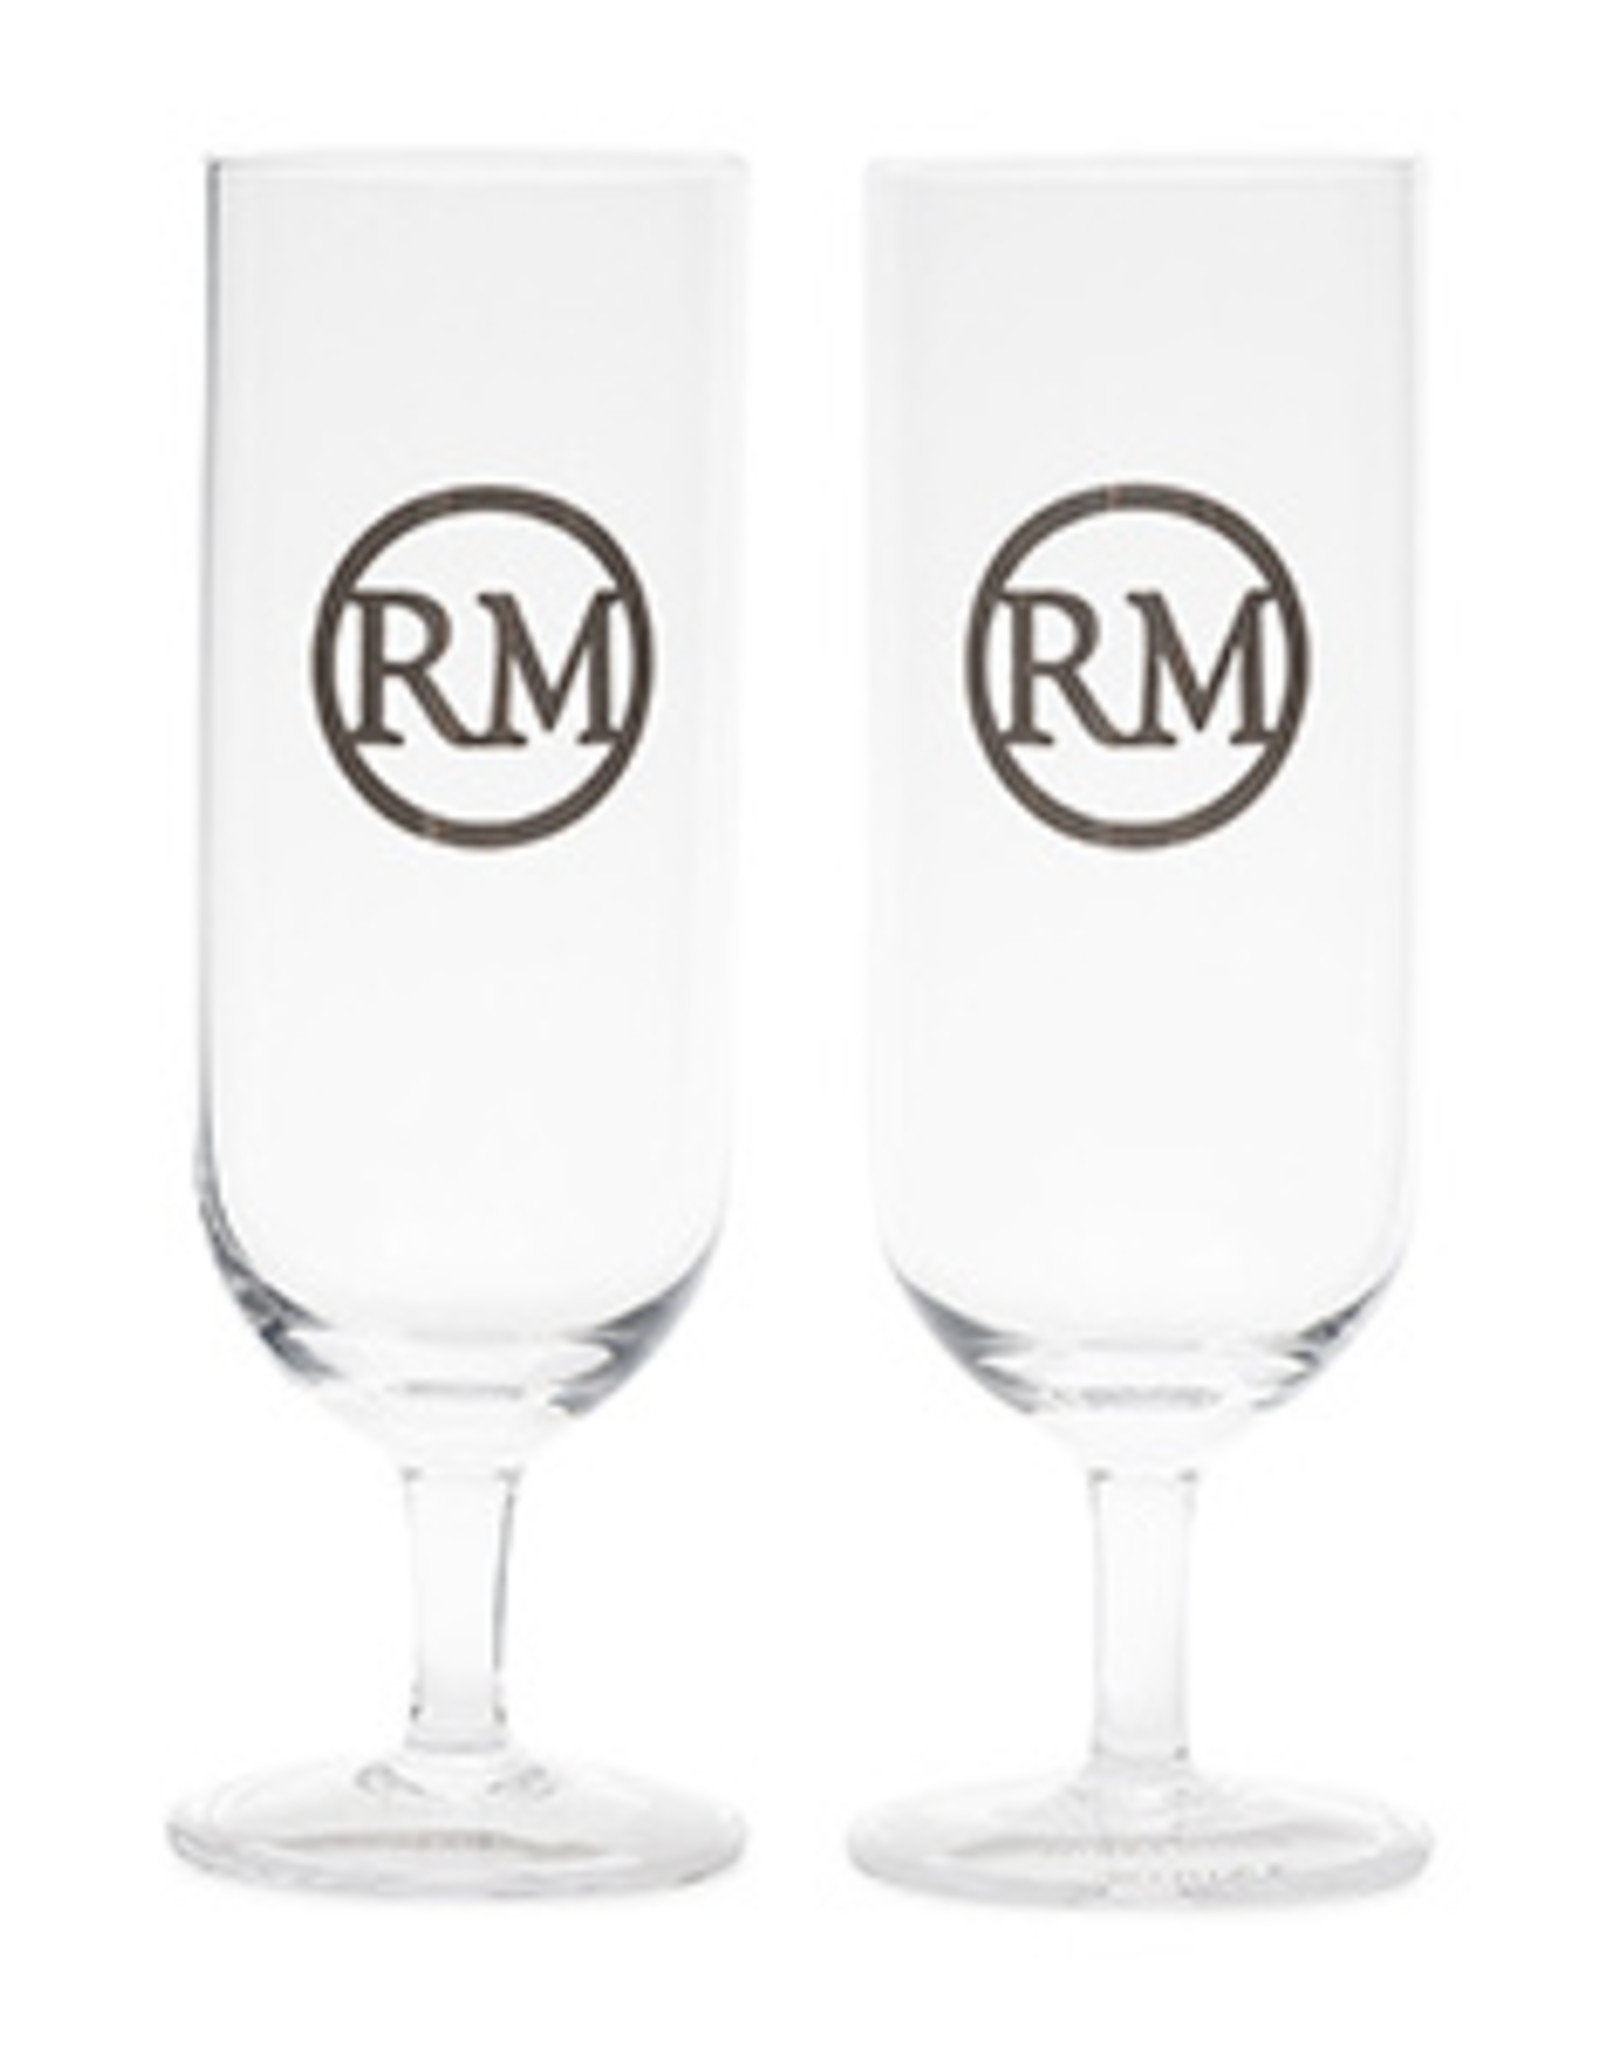 Riviera Maison Love RM Beer Glass 2 pieces